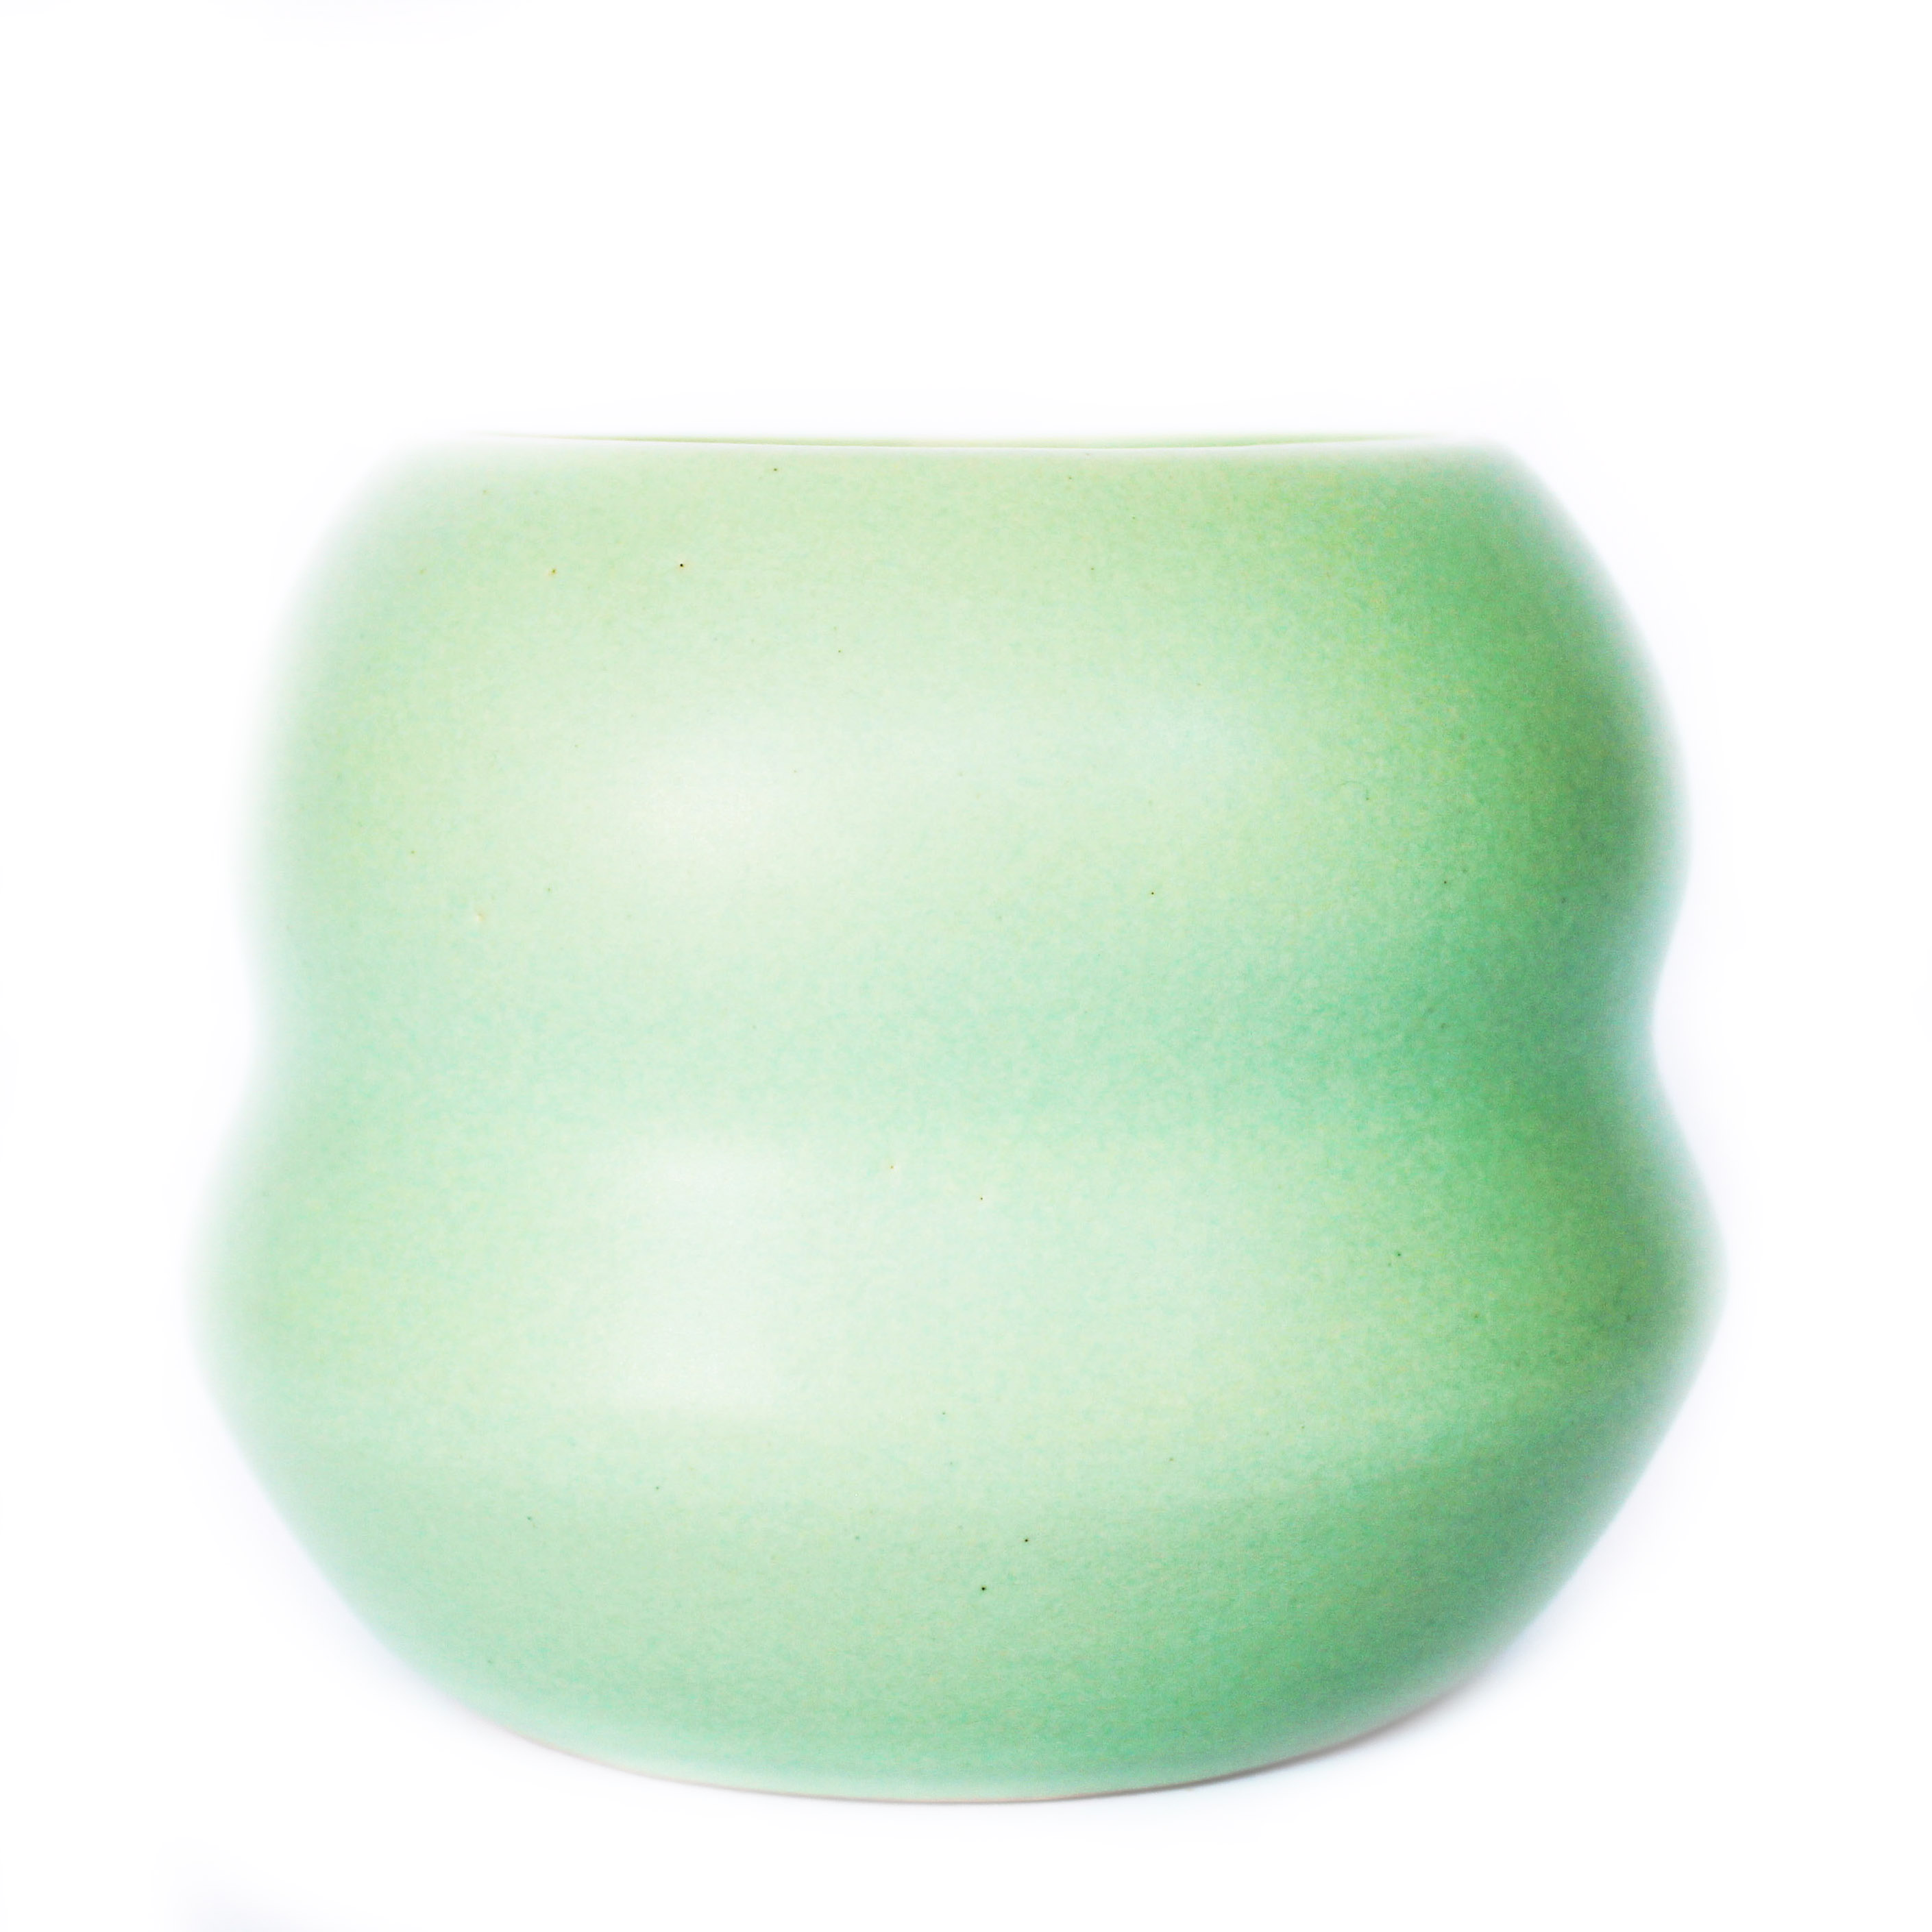 Matt Mint Green Curvy Planter